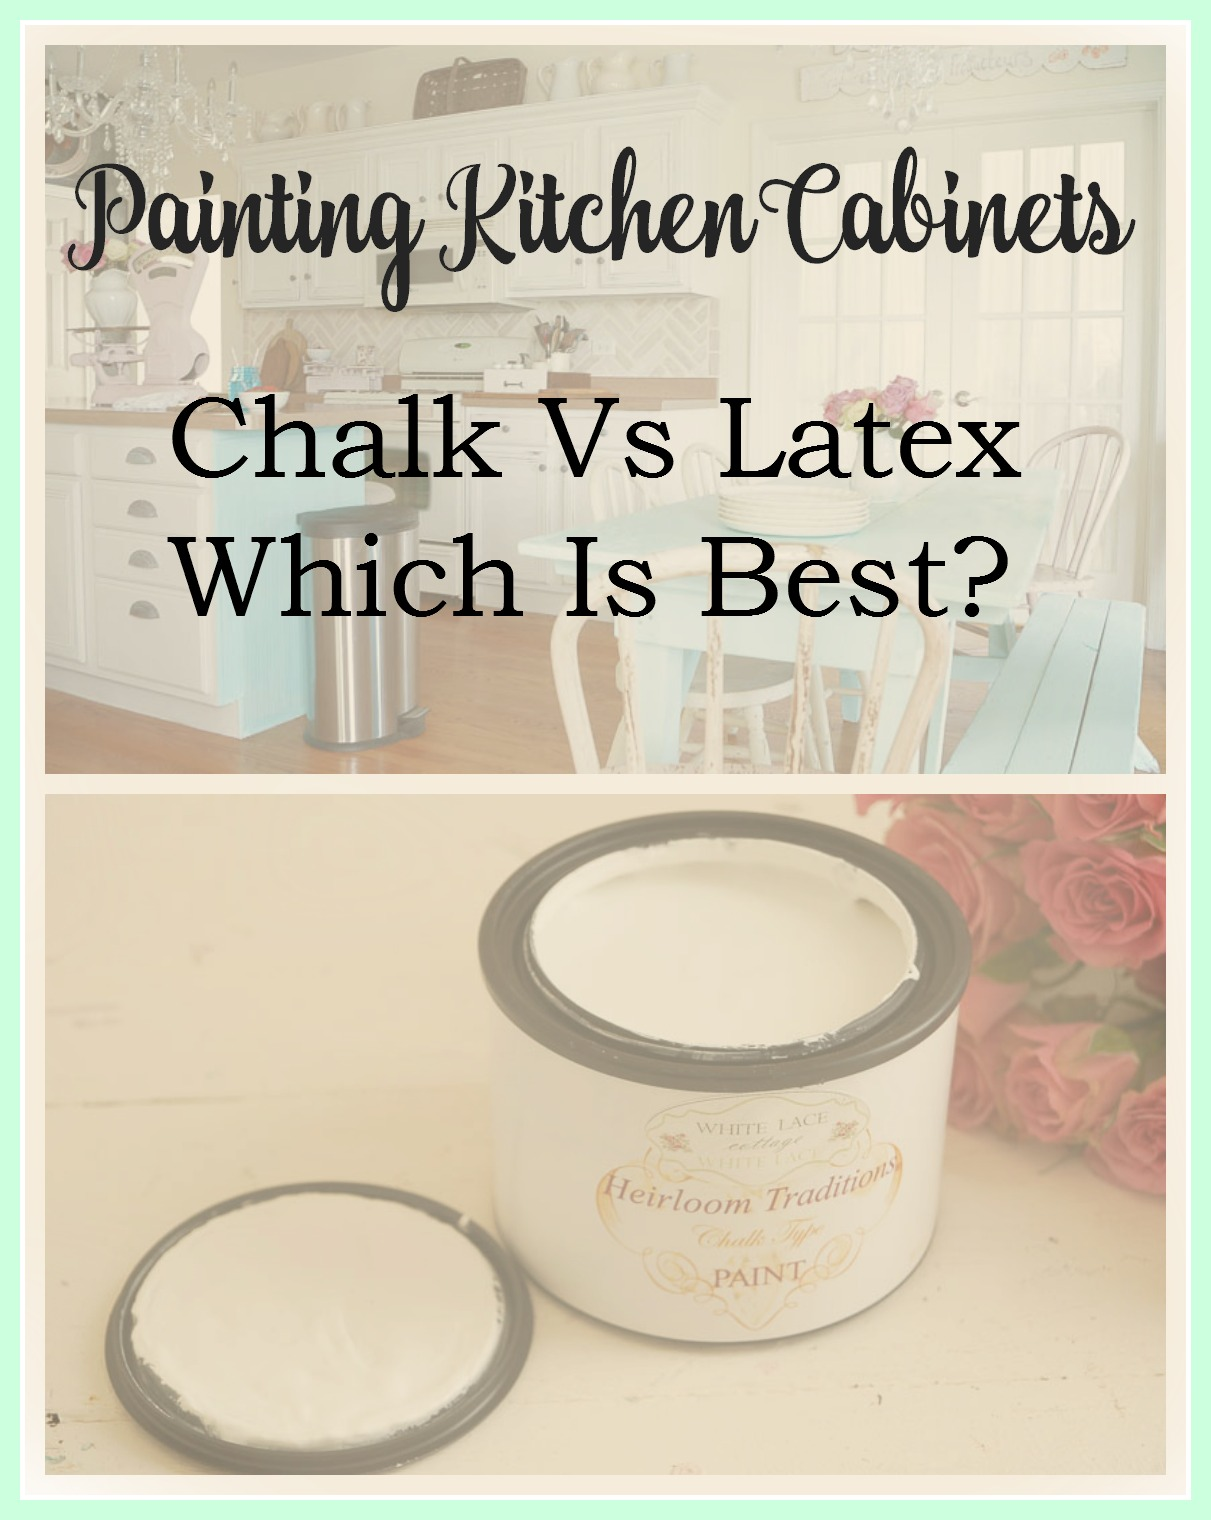 Painting Kitchen Cabinets Chalk Or Latex